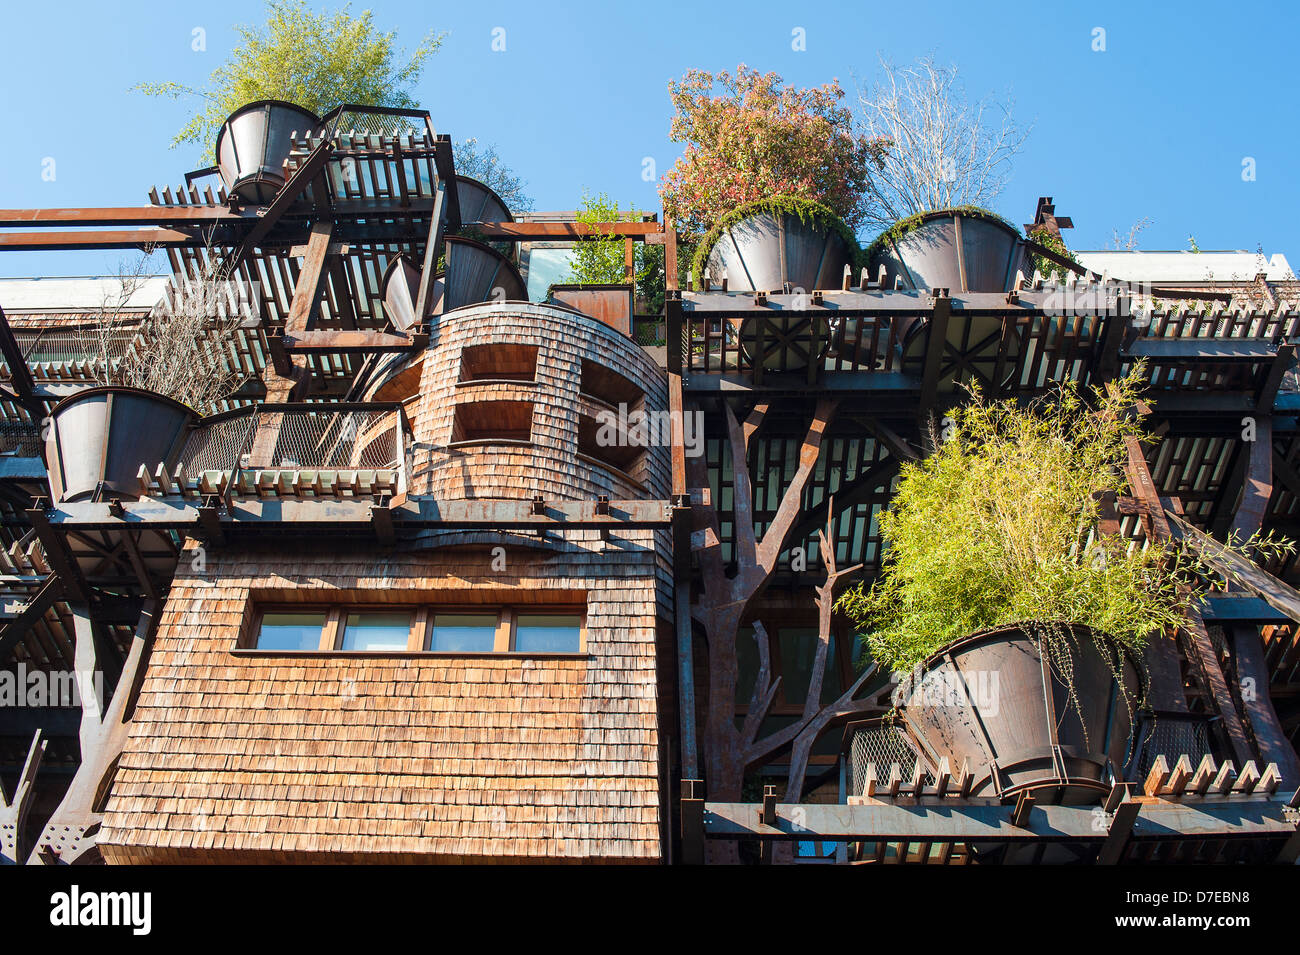 Europe Italie PIEMONTE Torino via l'architecture moderne Chiabrera Treehouse par Luciano Pia Photo Stock